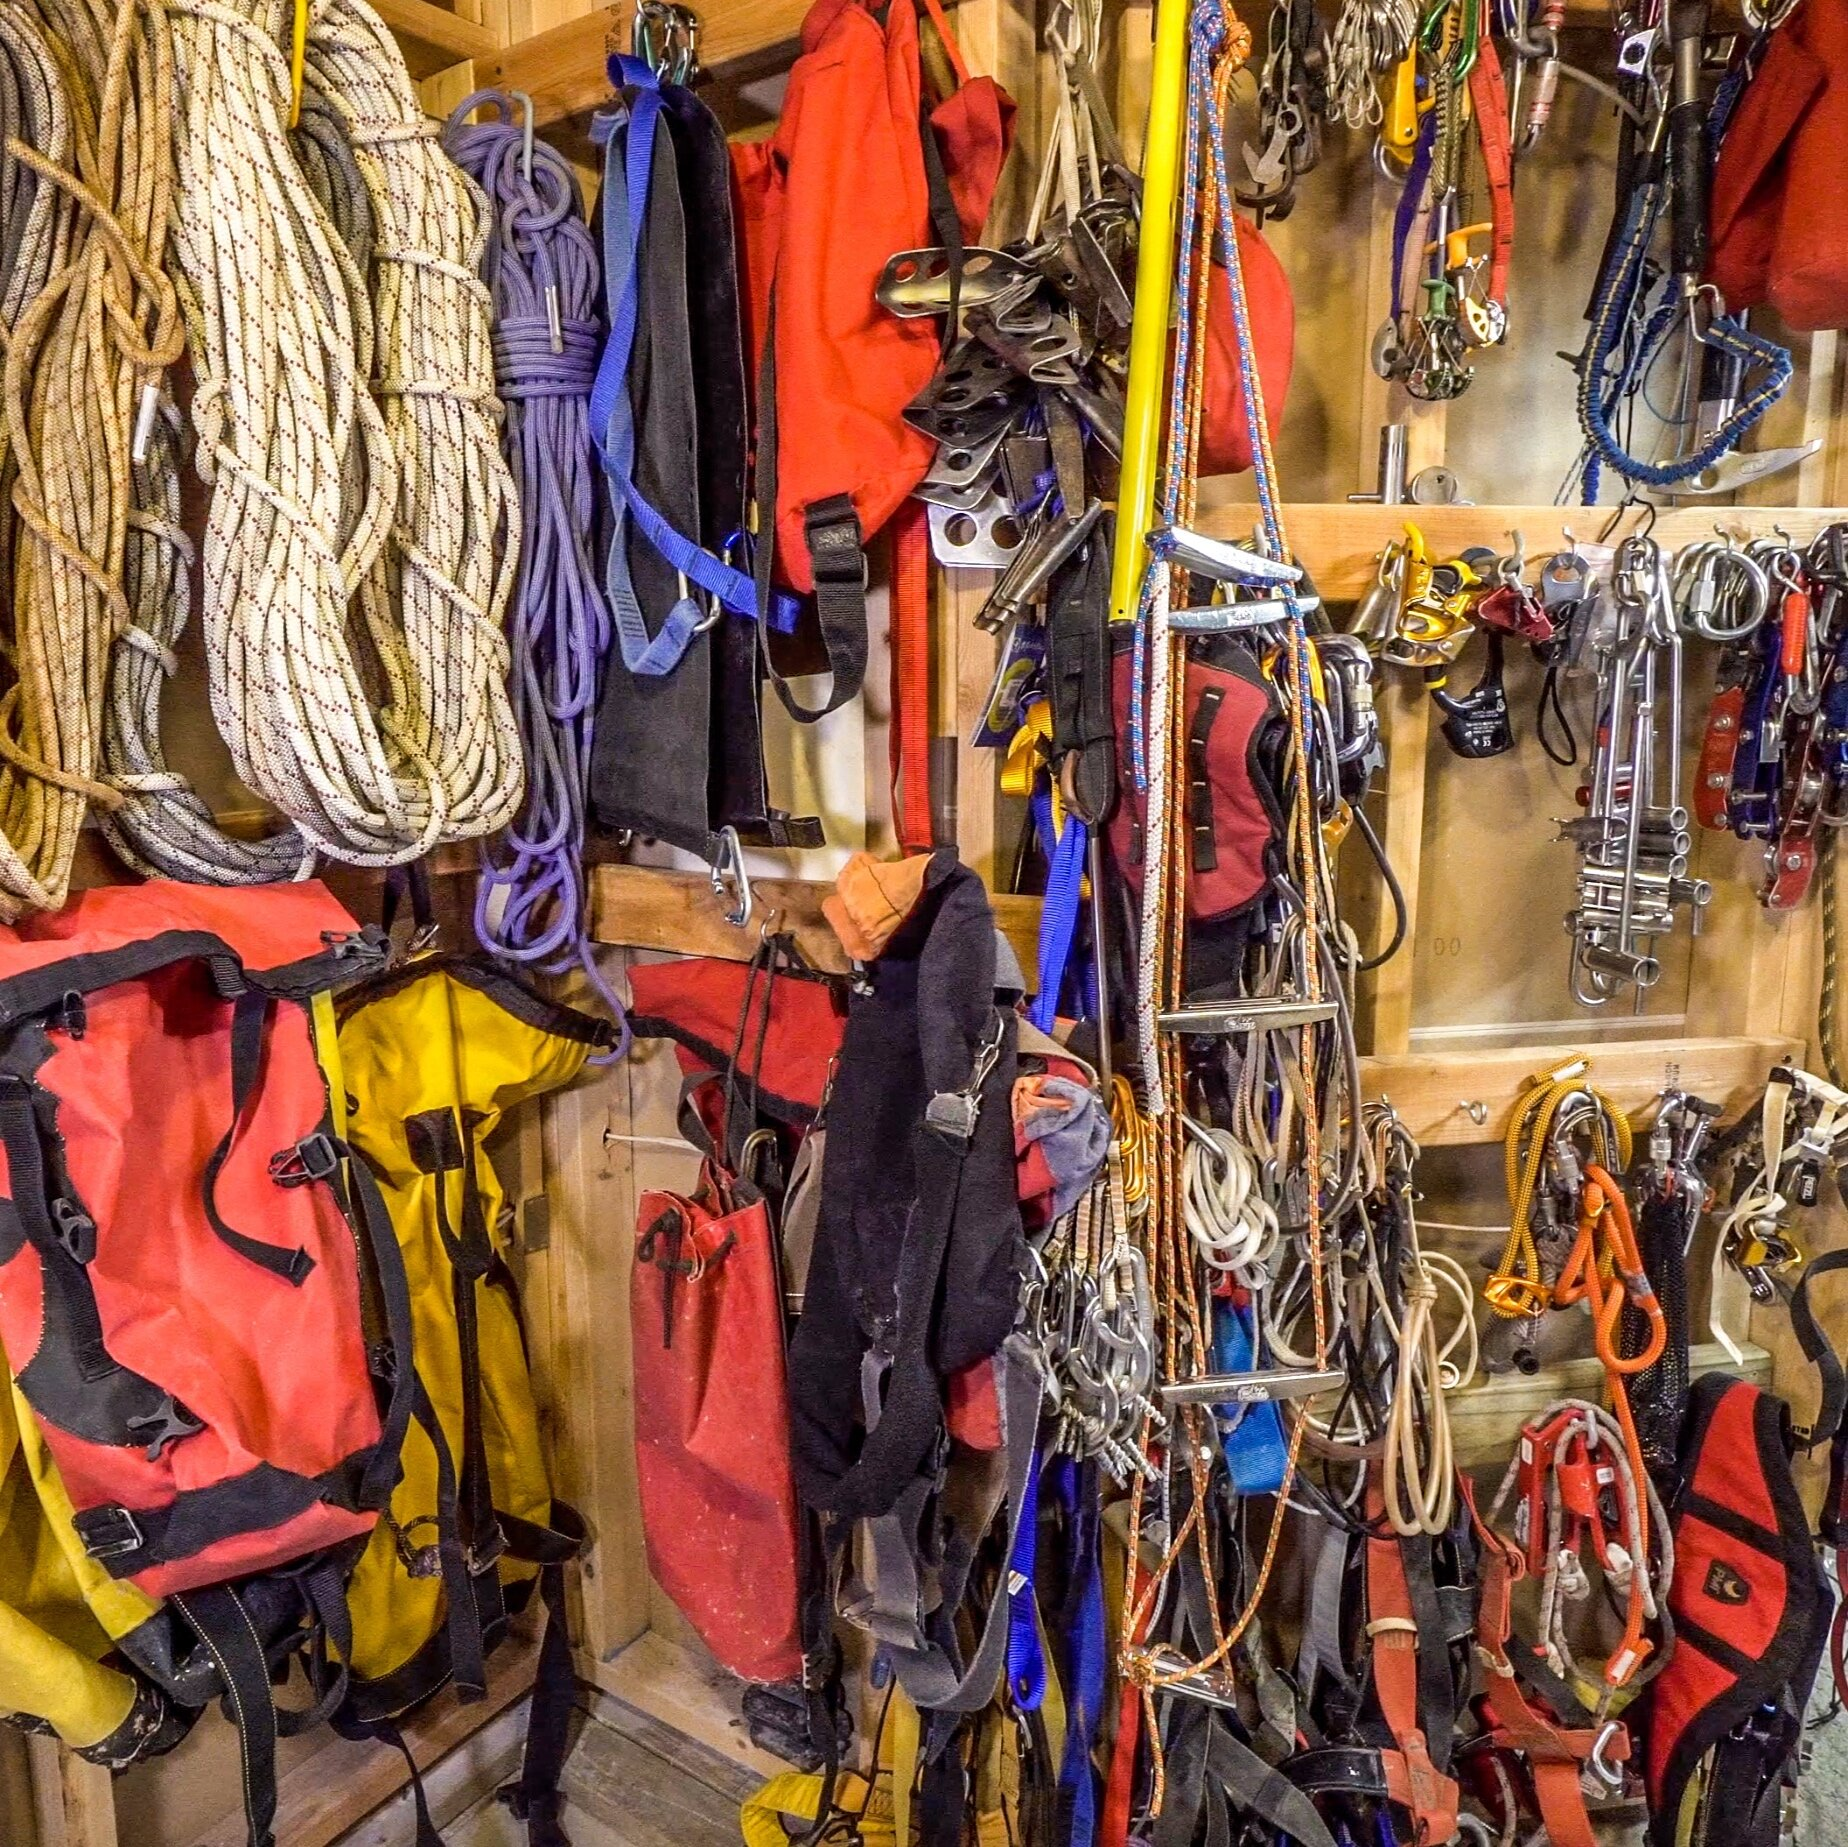 Caving gear - The equipment used to safely and efficiently visit caves is ever-changing. Utilizing the right gear and using it properly can enhance both the comfort and enjoyment of spending time underground.